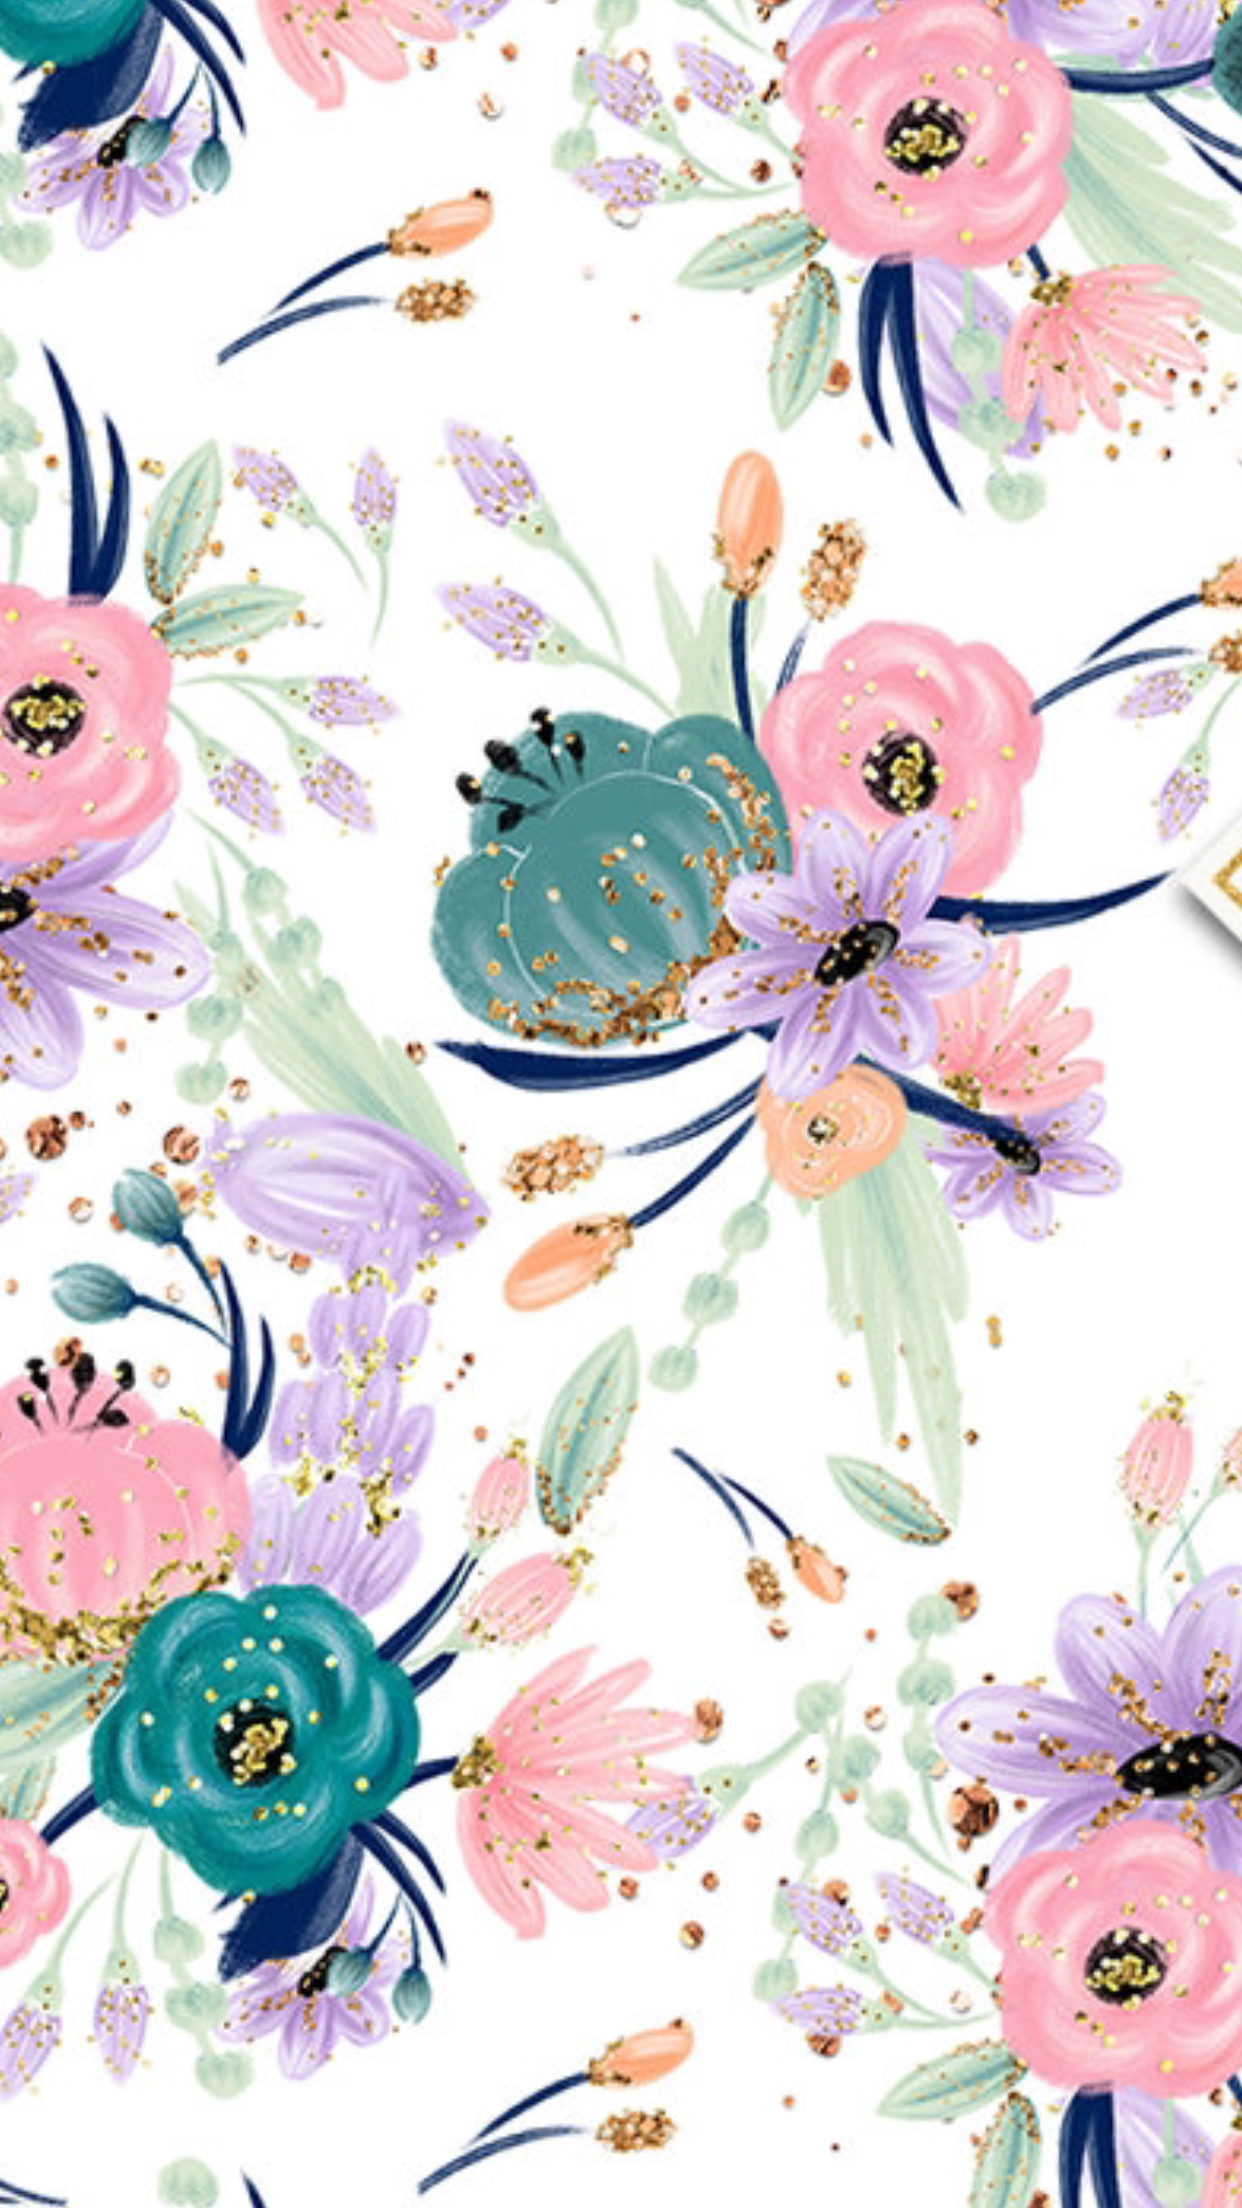 Cute Flowers Wallpaper Floral Wallpa 967592 Png Images Pngio